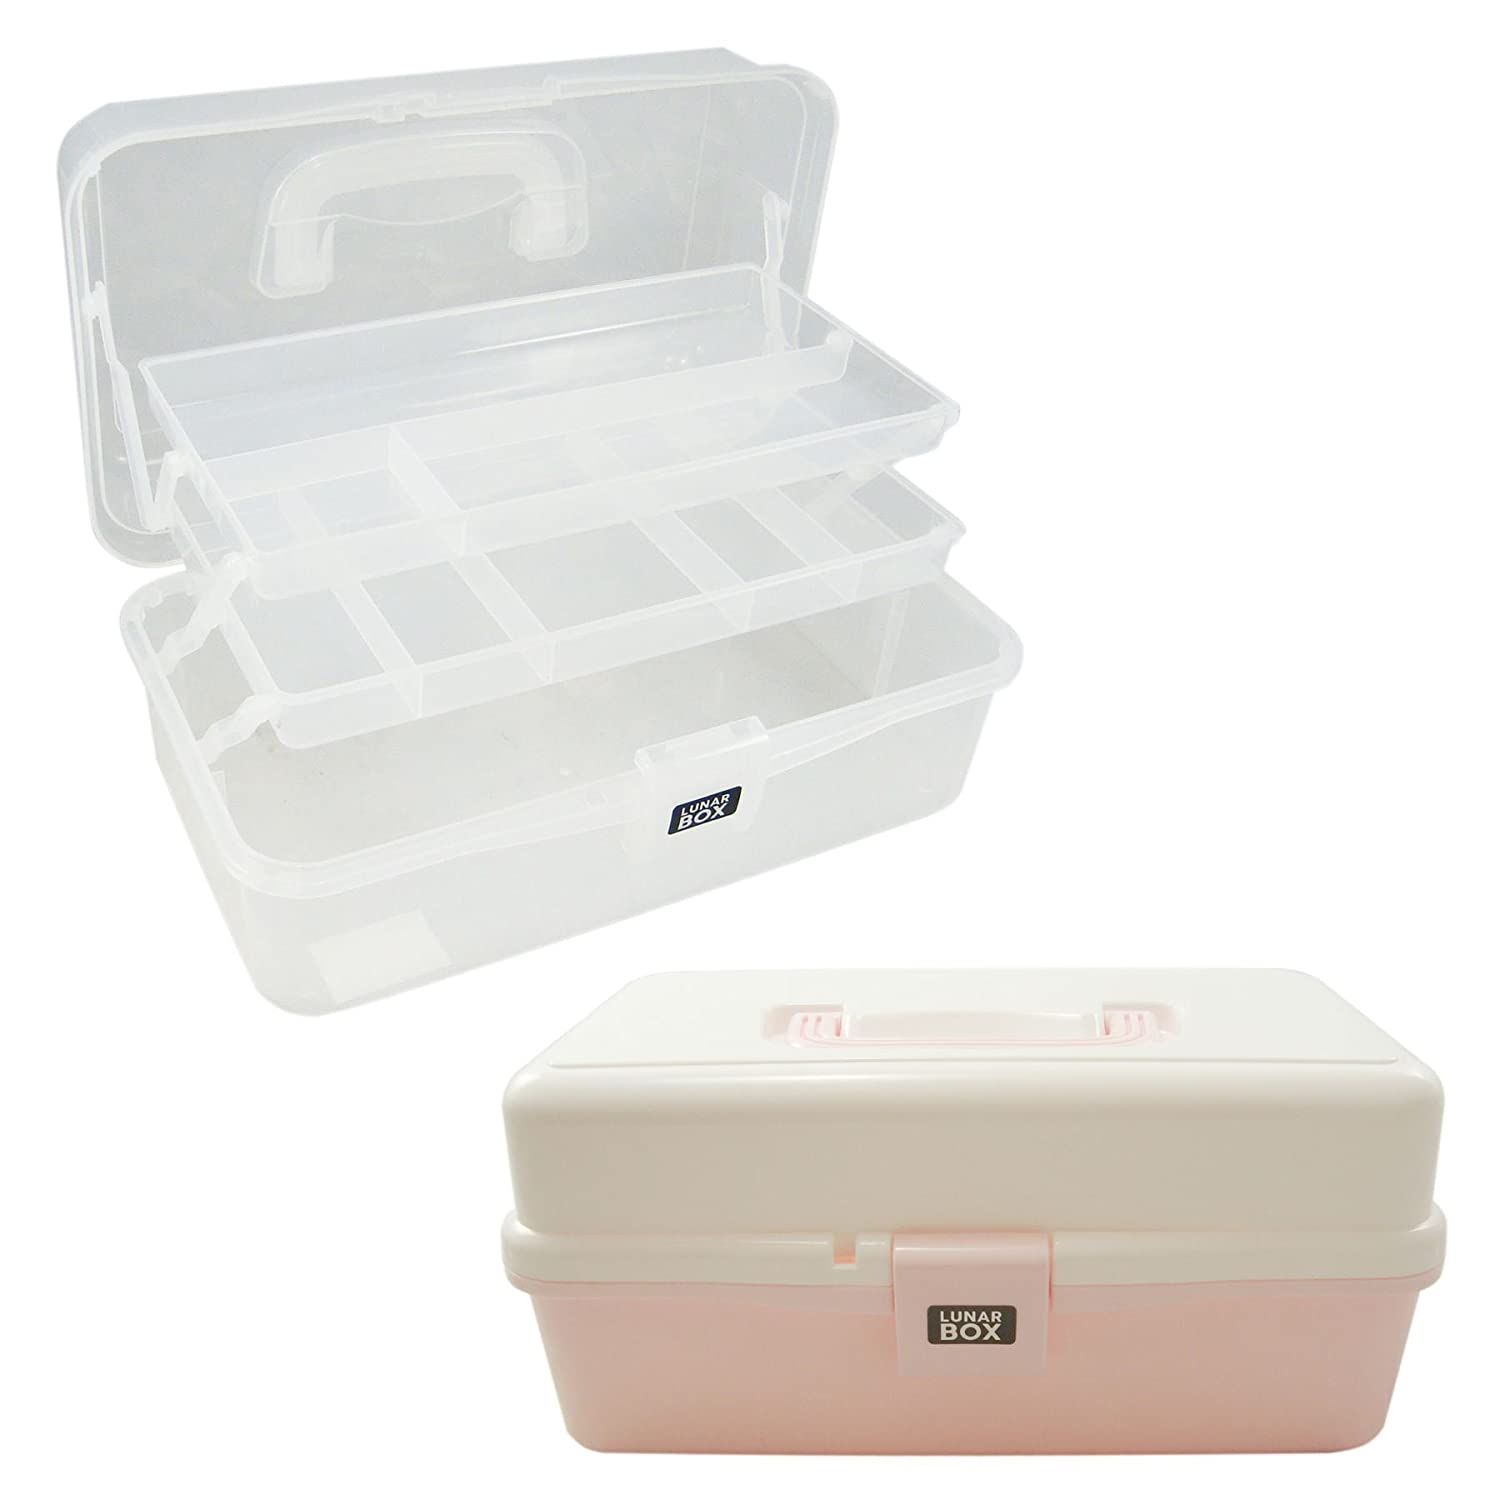 2 Tray Cantilever Arts Crafts /& Sewing box Clear Lunar Box /Ã/'/Â/® by Lunar Box Adjustable Compartments